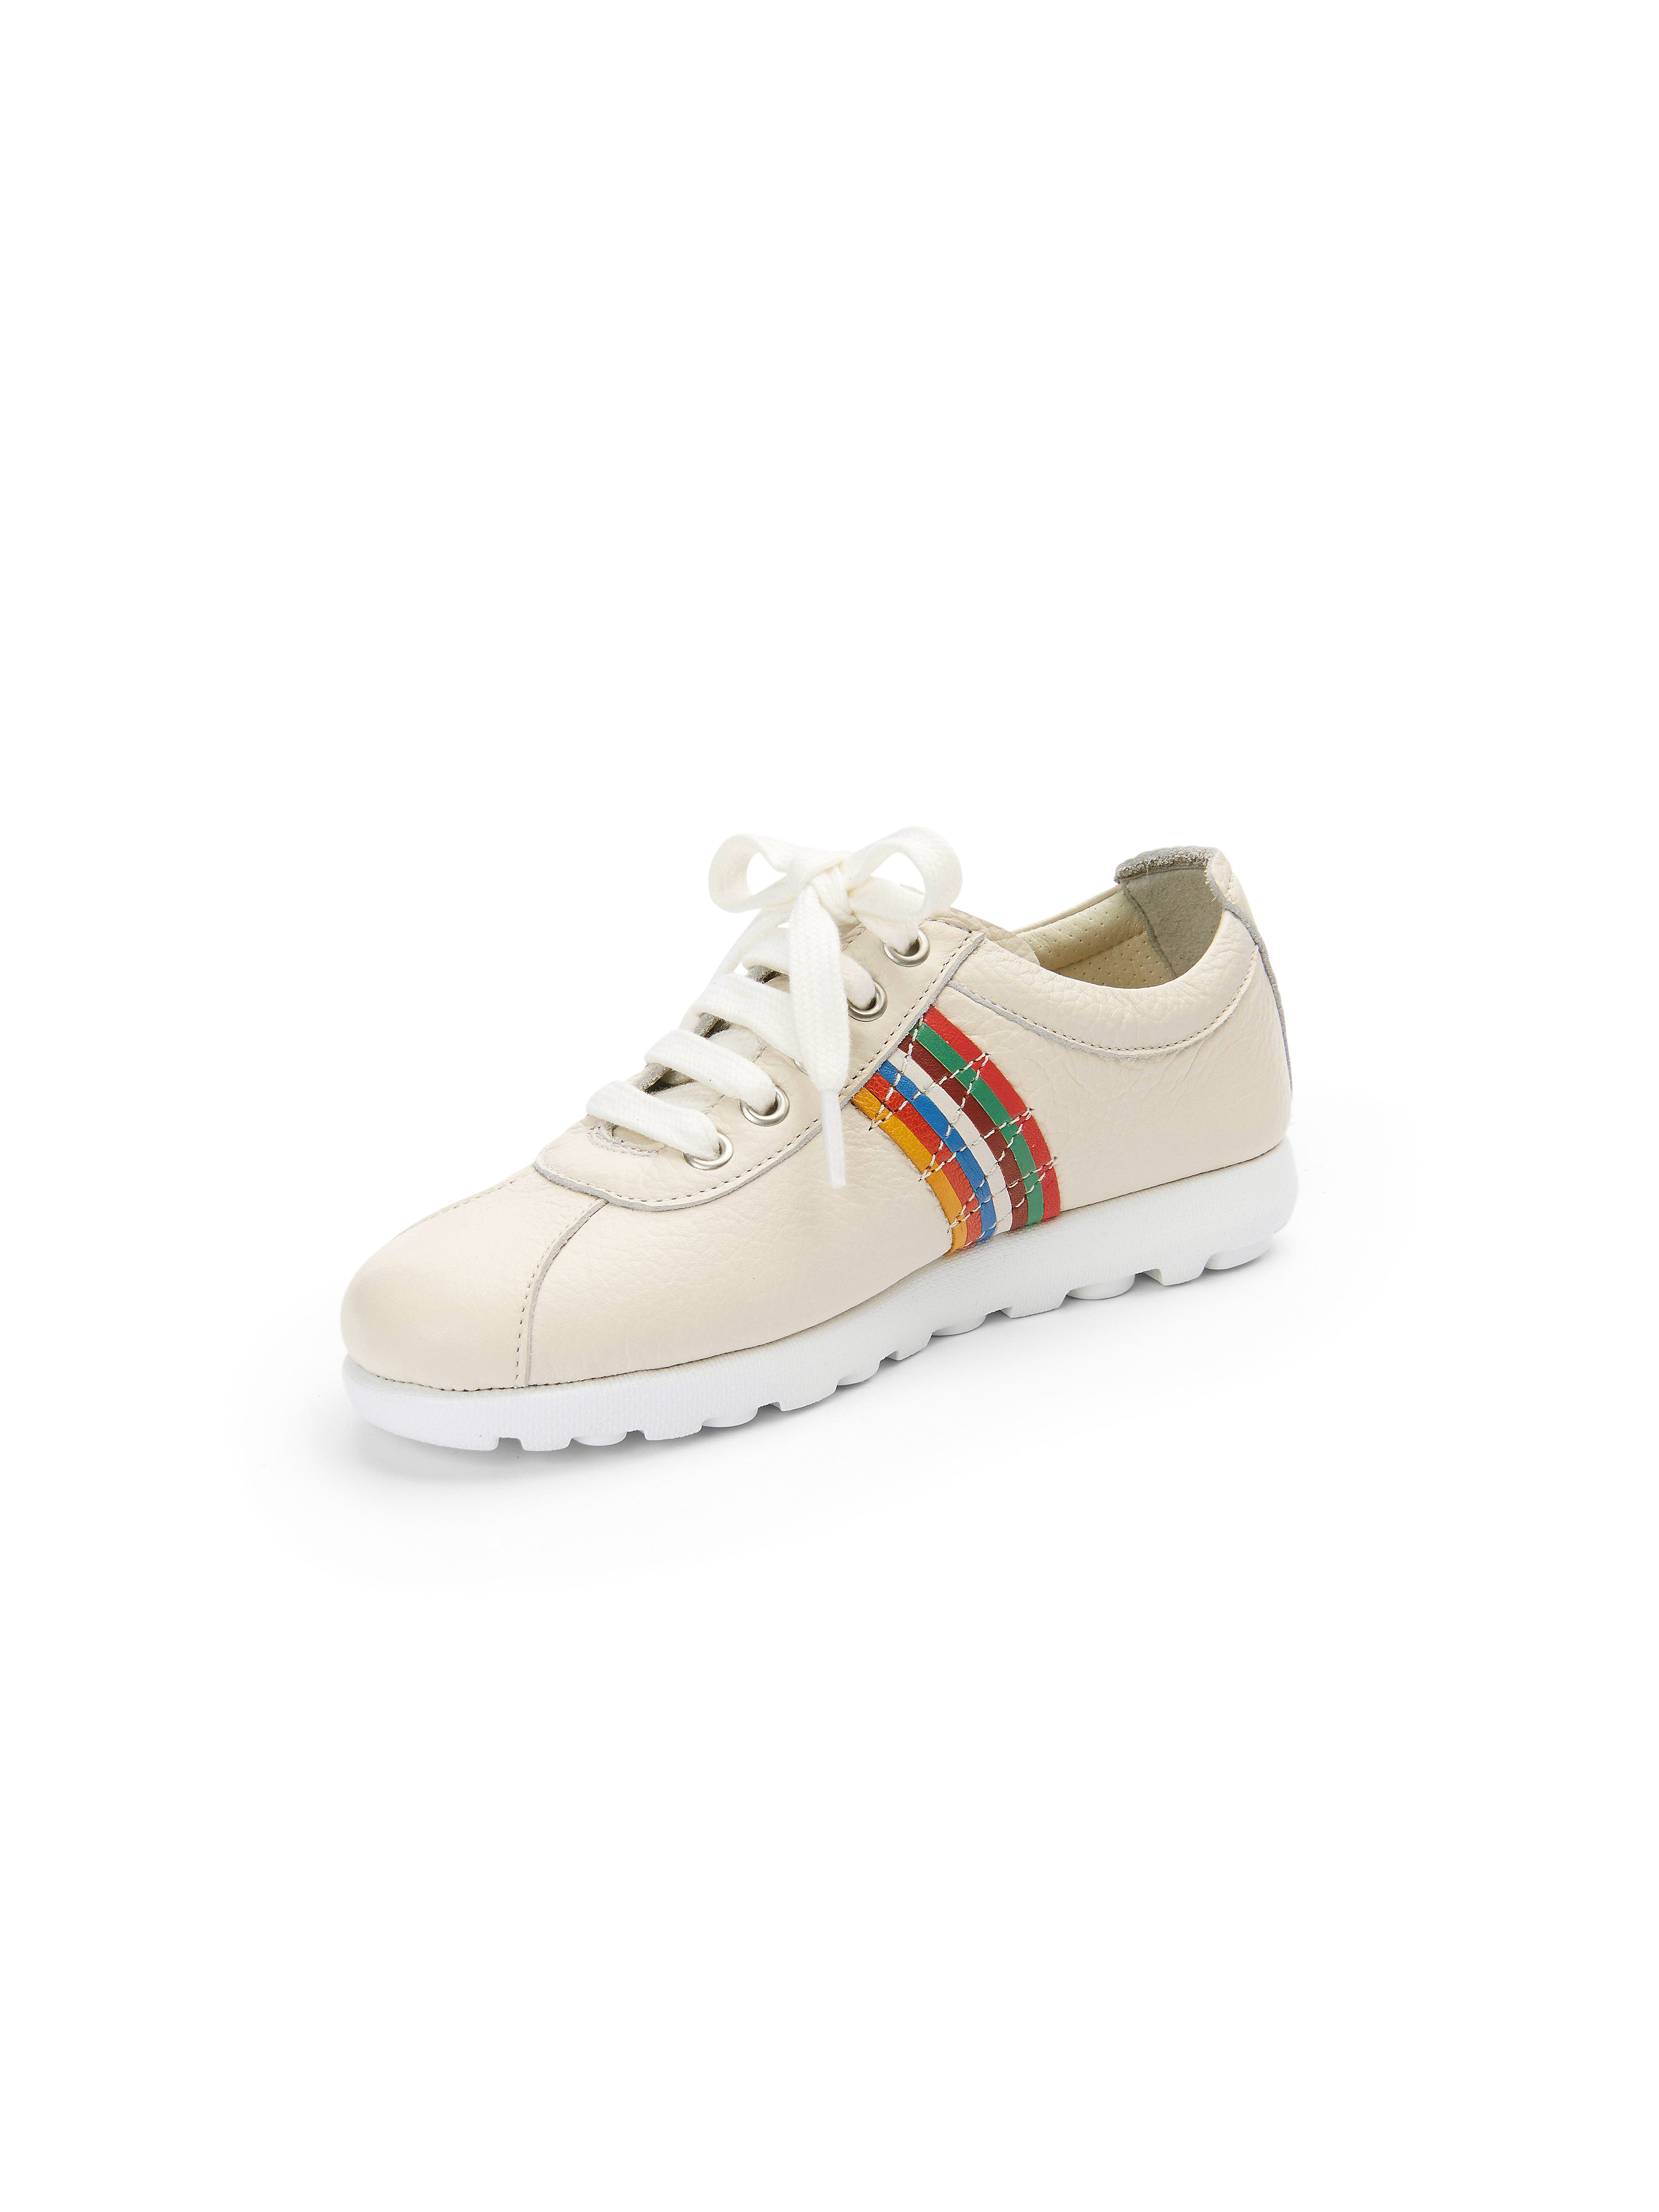 trainers-in-an-extremely-comfortable-finish-aerosoles-white